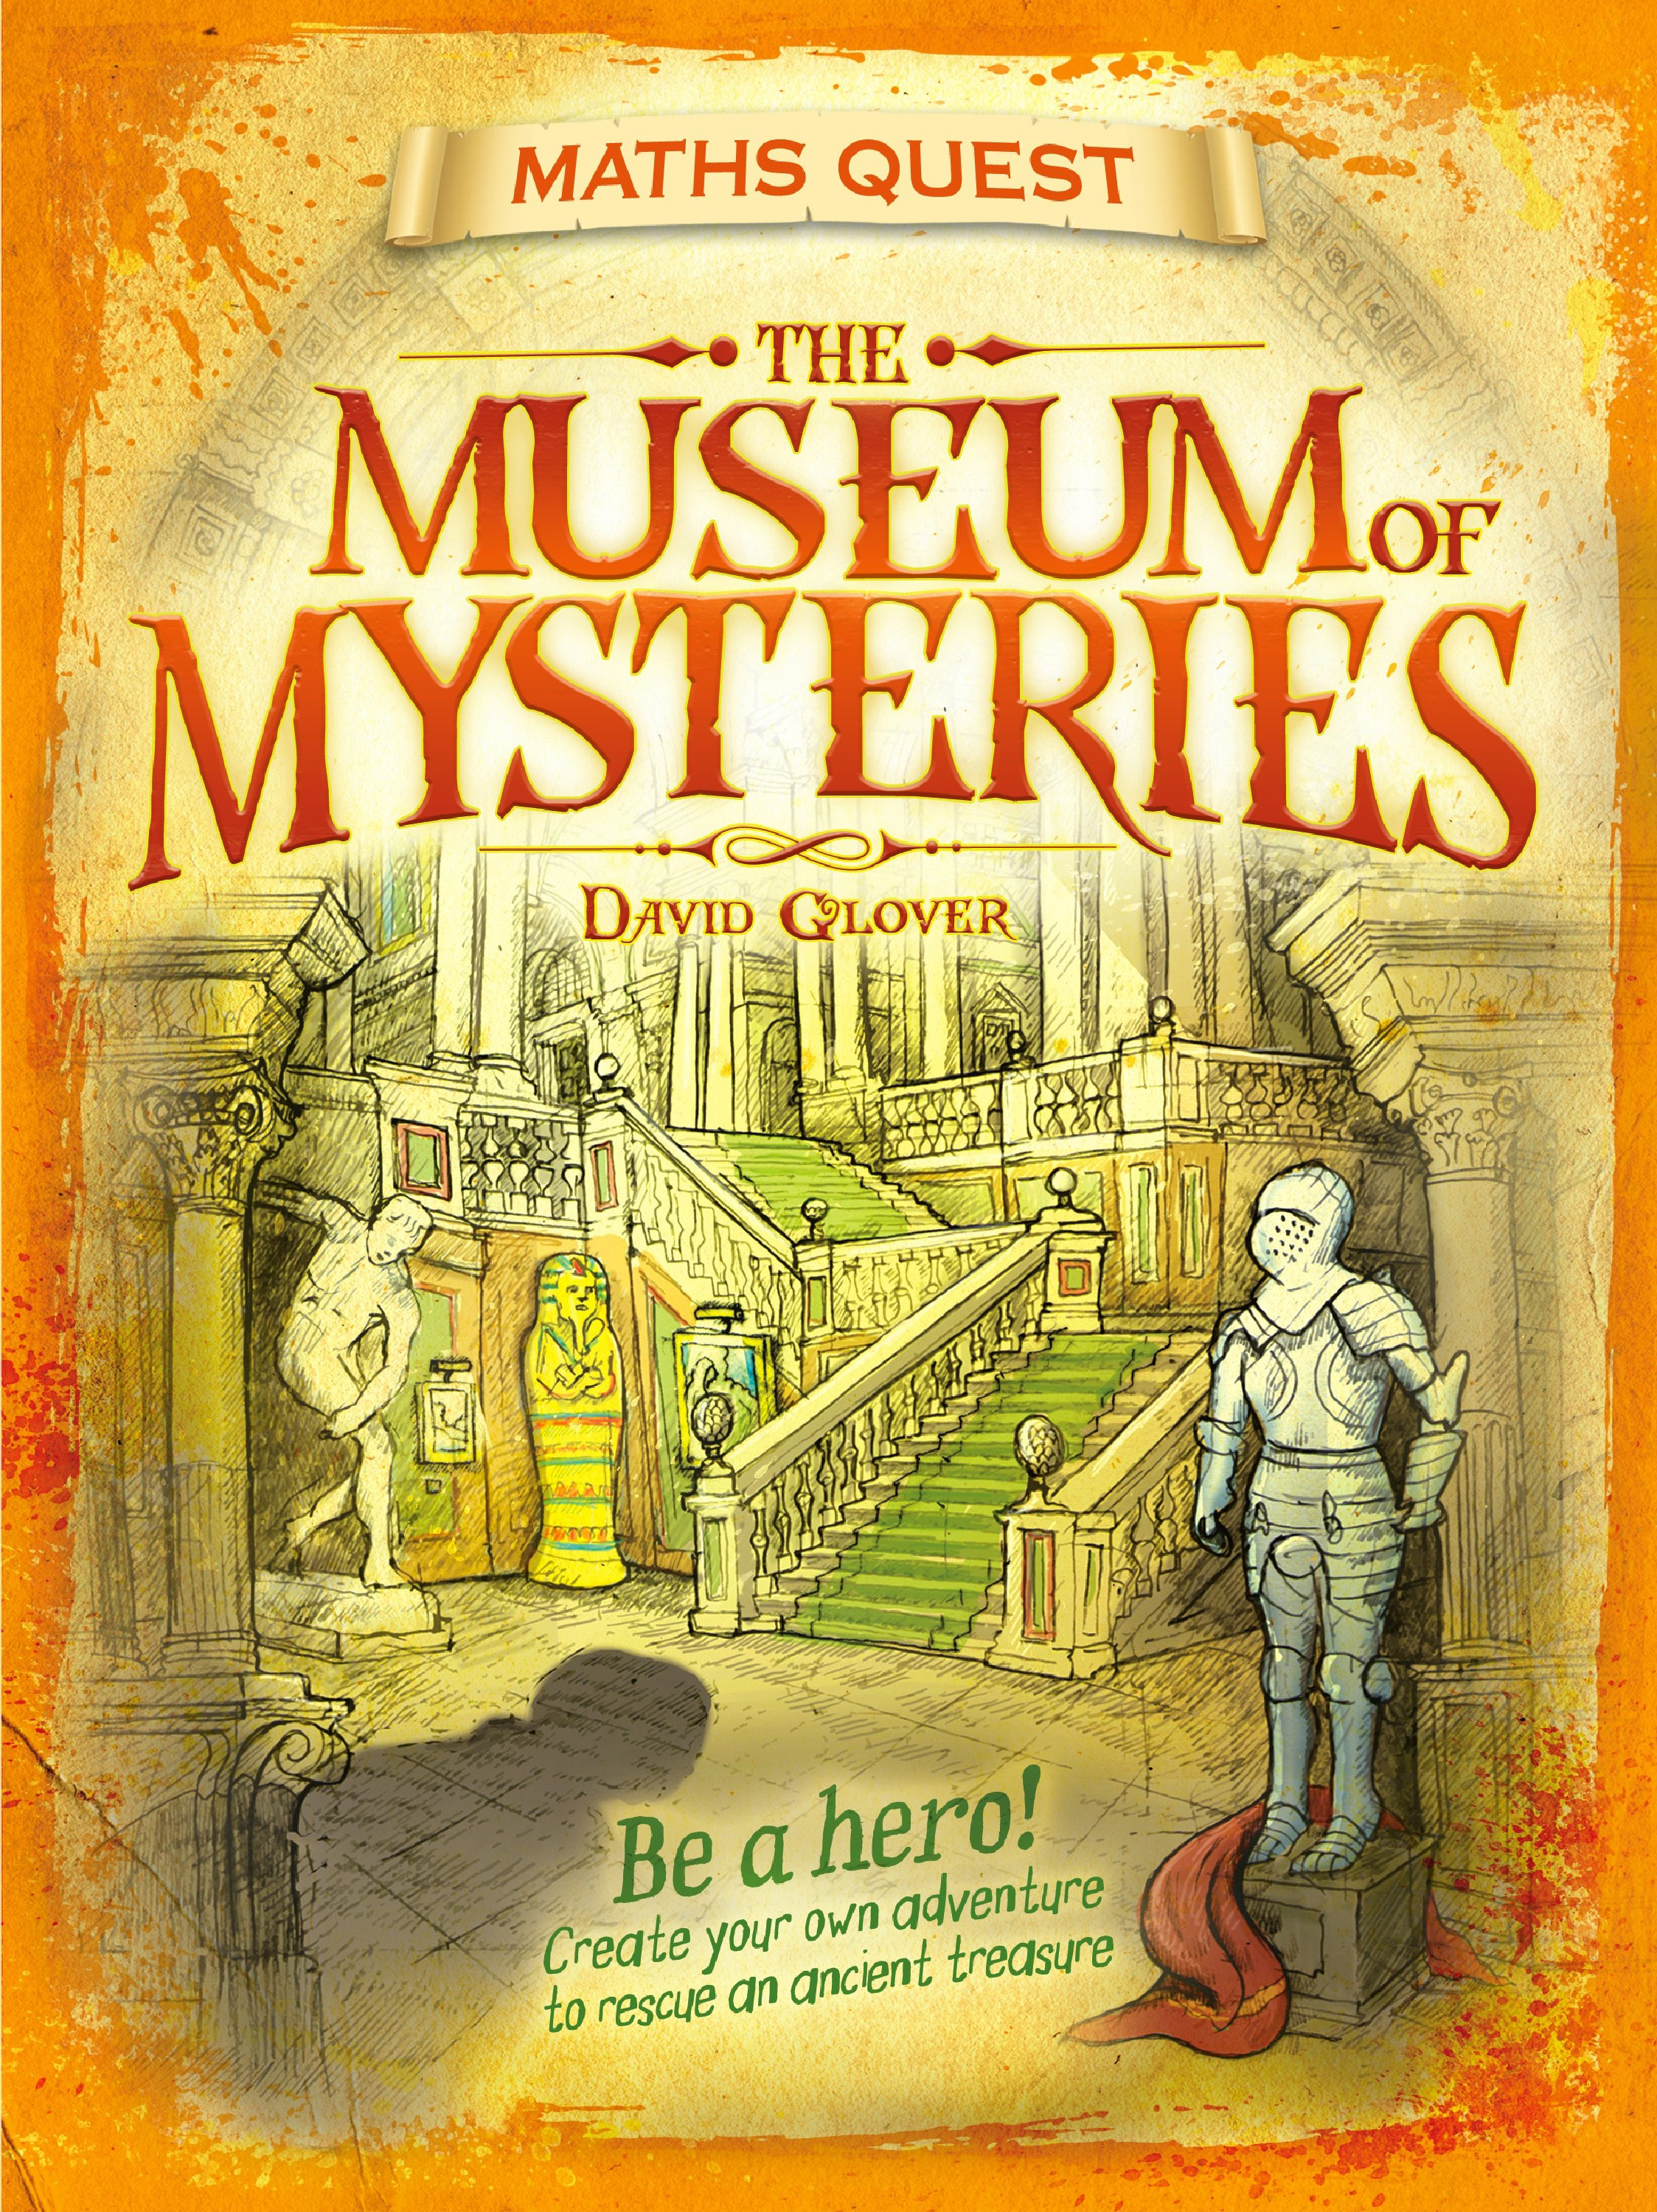 Old Book Cover Quest : Maths quest the museum of mysteries david glover